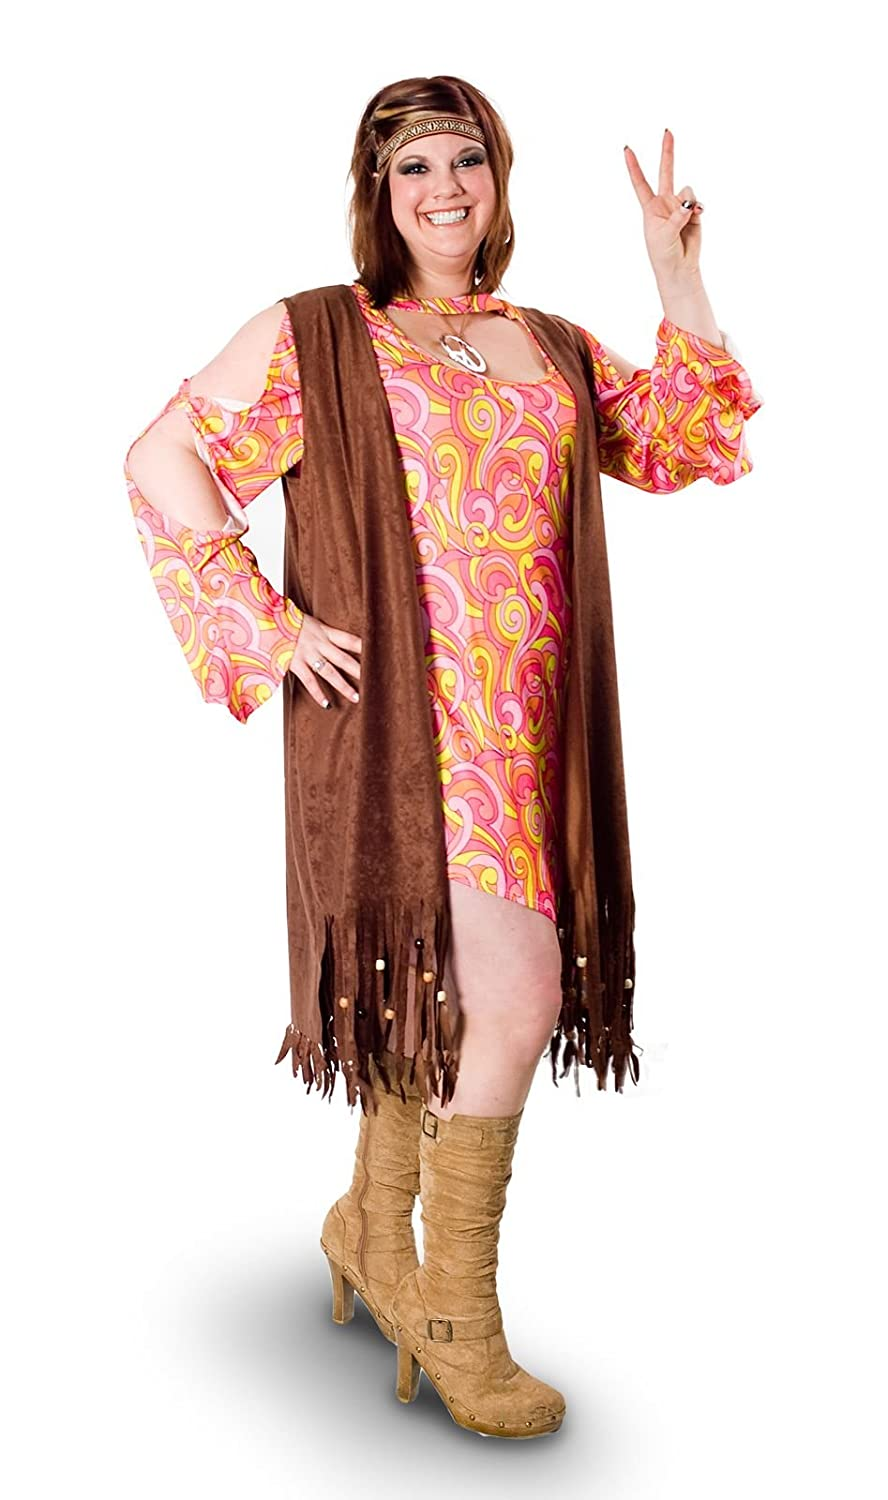 60s 70s Plus Size Dresses, Clothing, Costumes Sunnywood Womens Plus-Size Lava Diva Funky Swirl Hippie Costume $42.58 AT vintagedancer.com